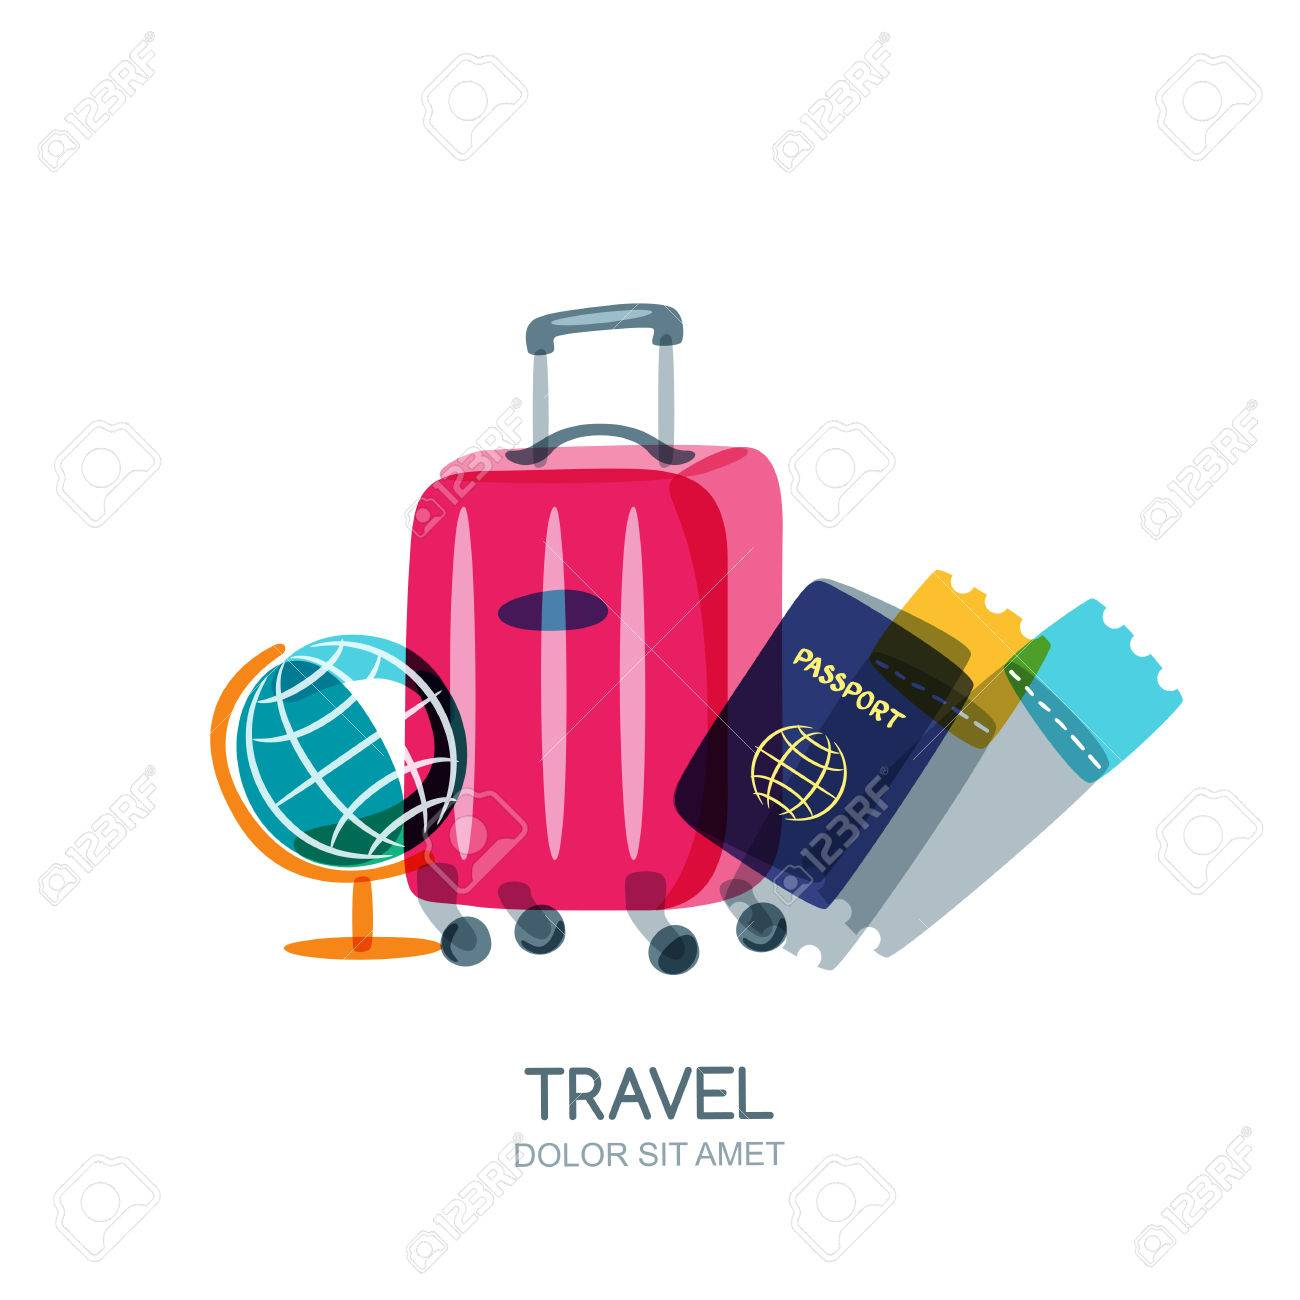 Luggage clipart passport. Free download clip art